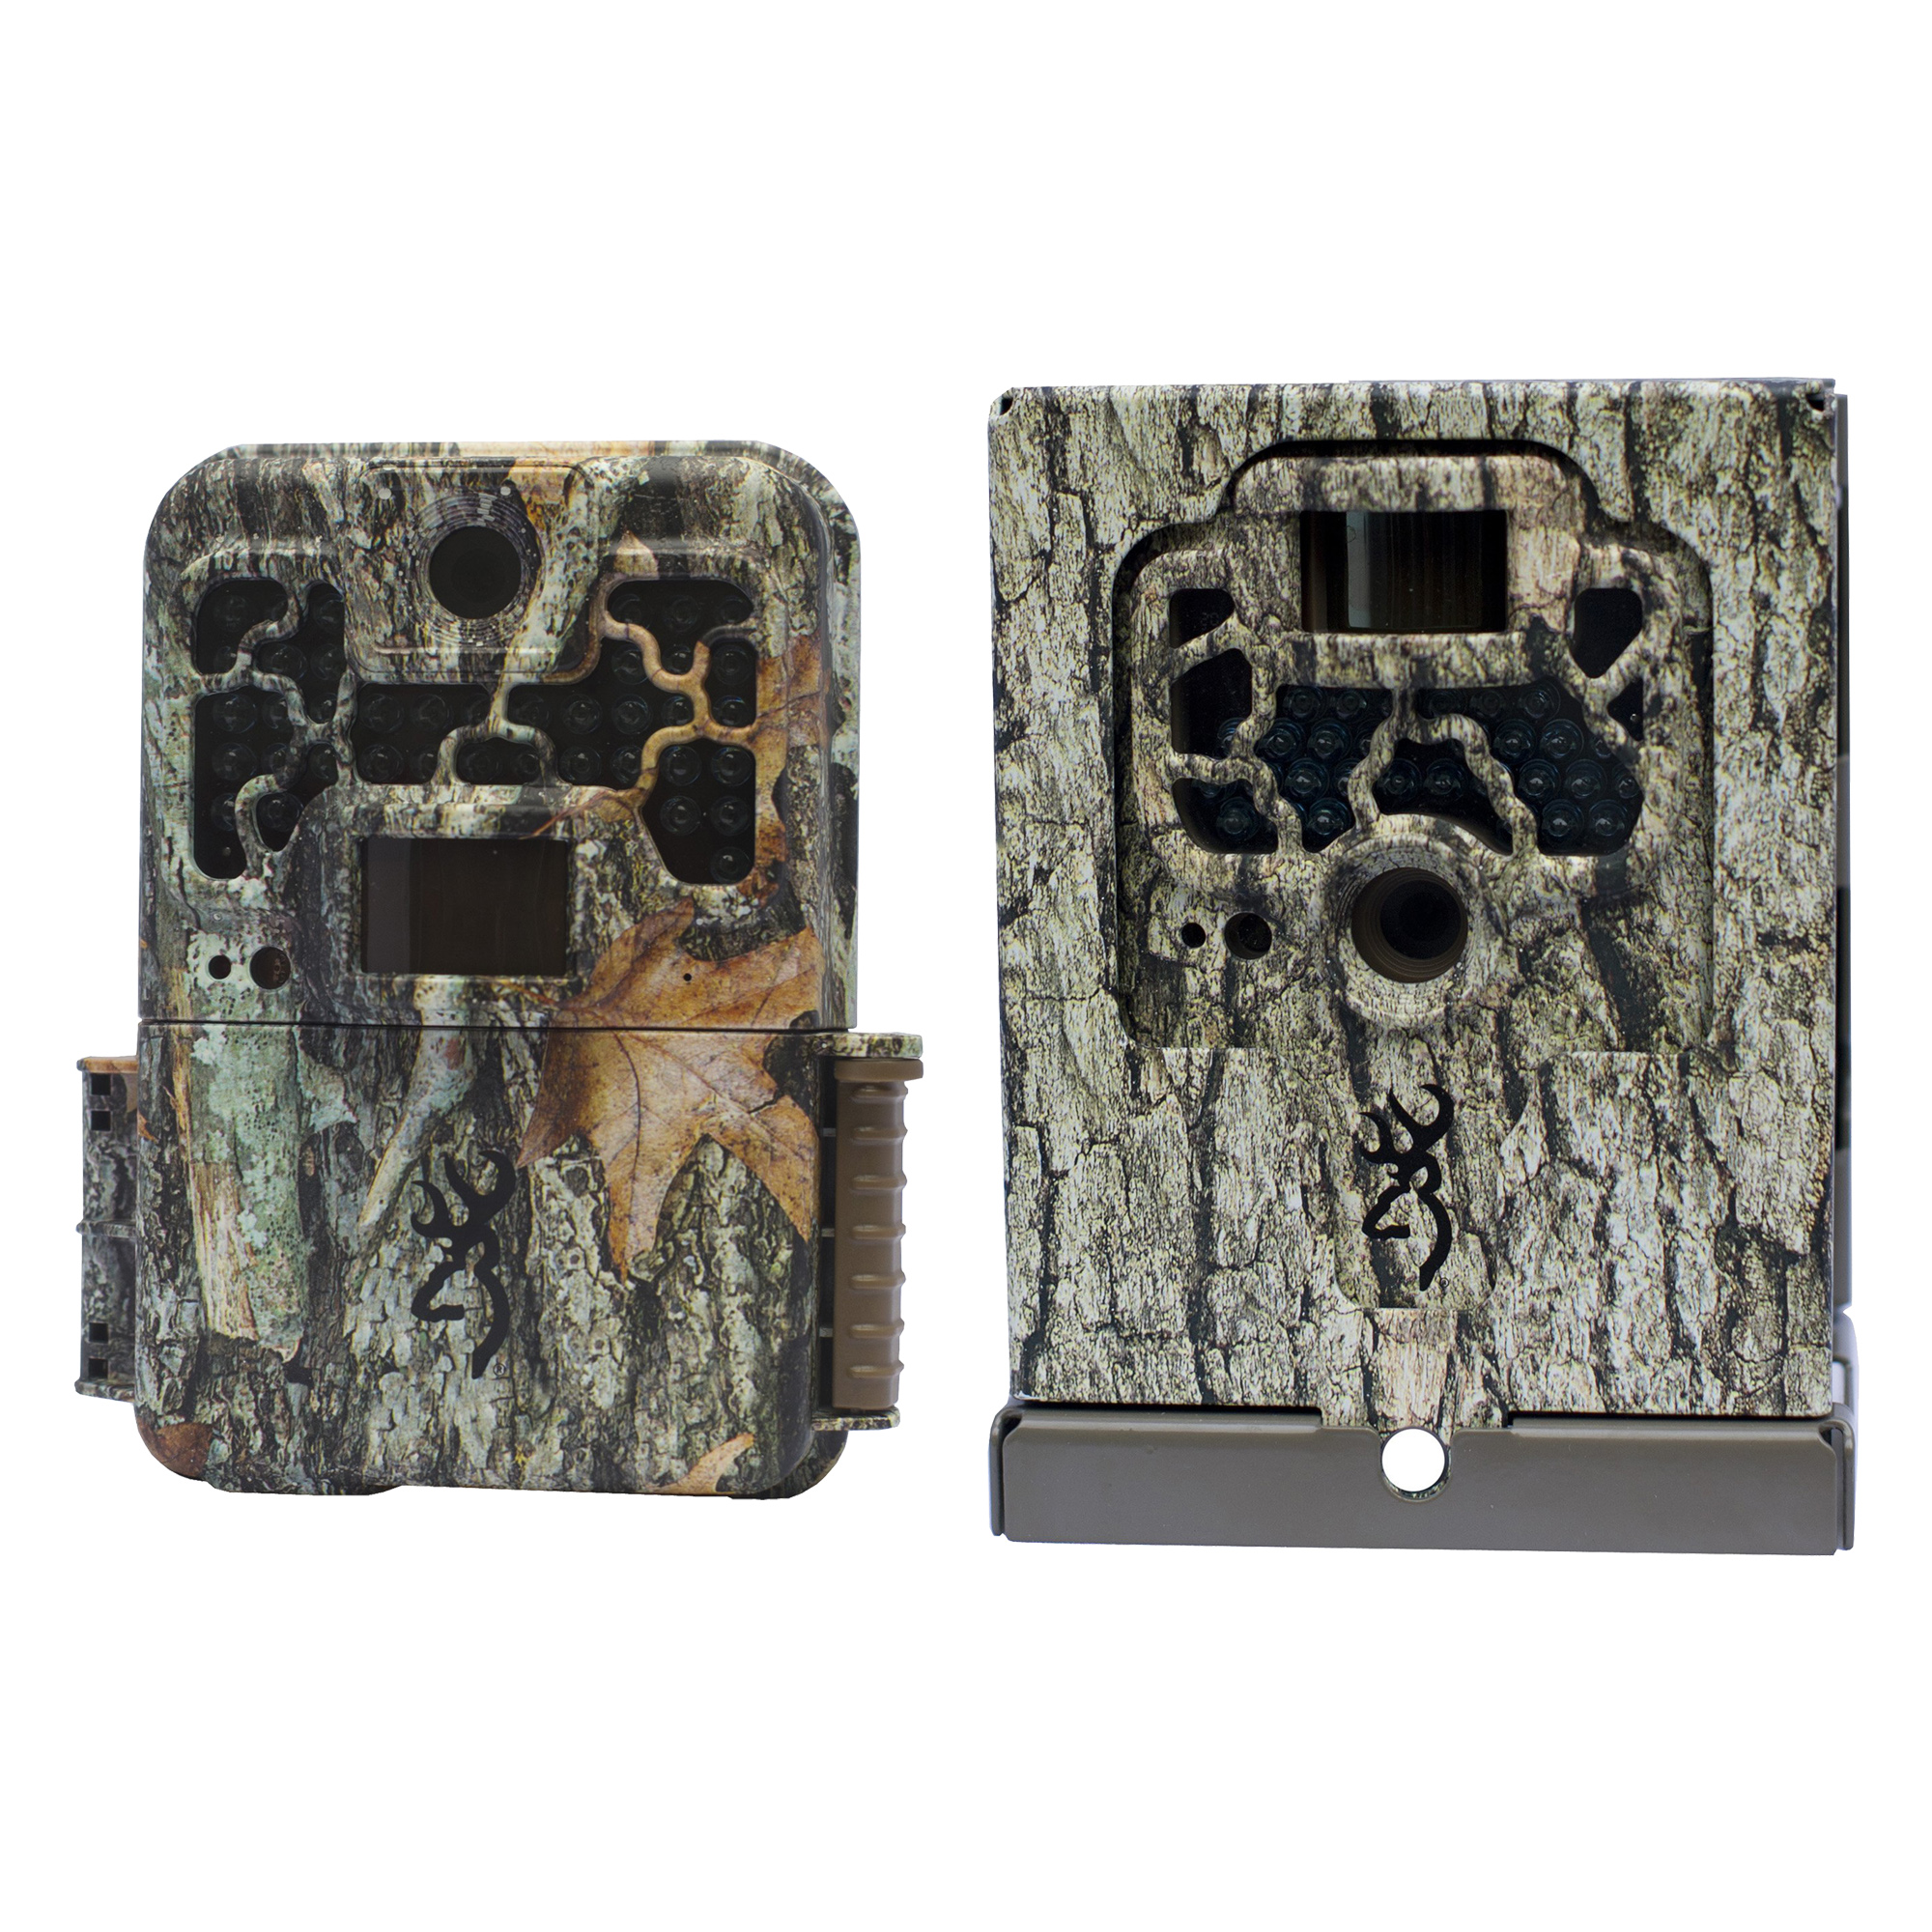 Browning Trail Cameras Recon Force FHD Platinum 10MP Game Camera + Security Box by Browning Trail Cameras